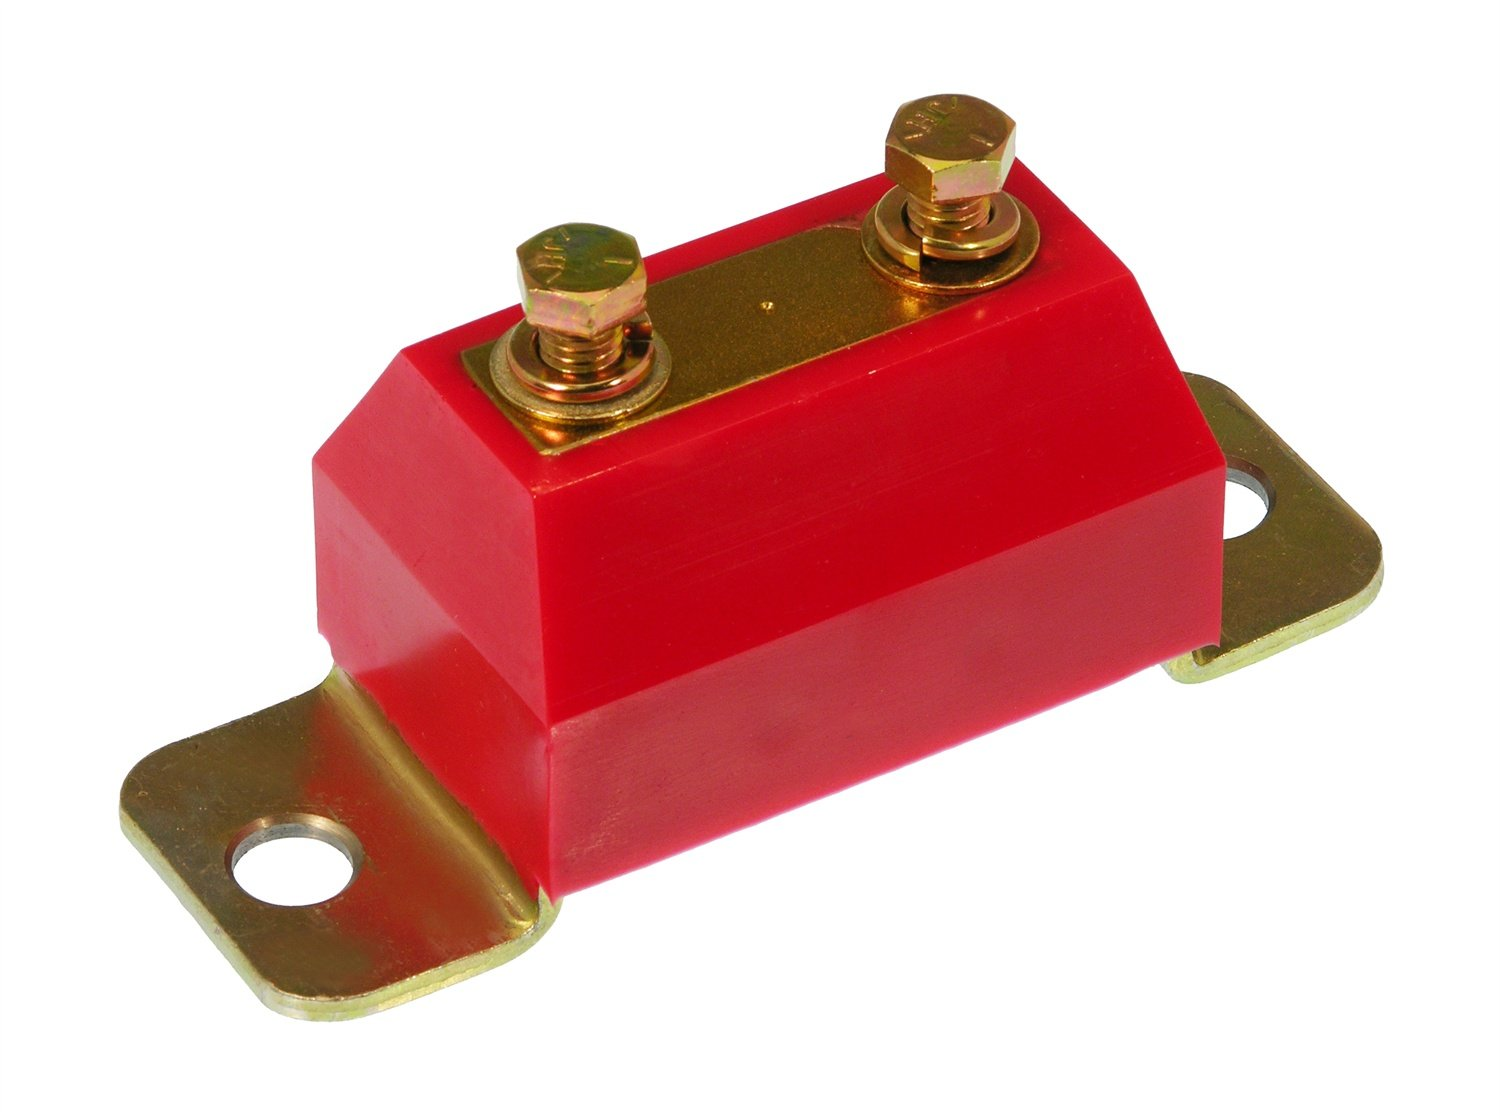 Prothane 6-1604 Red 6 Cylinder Automatic and Manual Transmission Mount Kit by Prothane